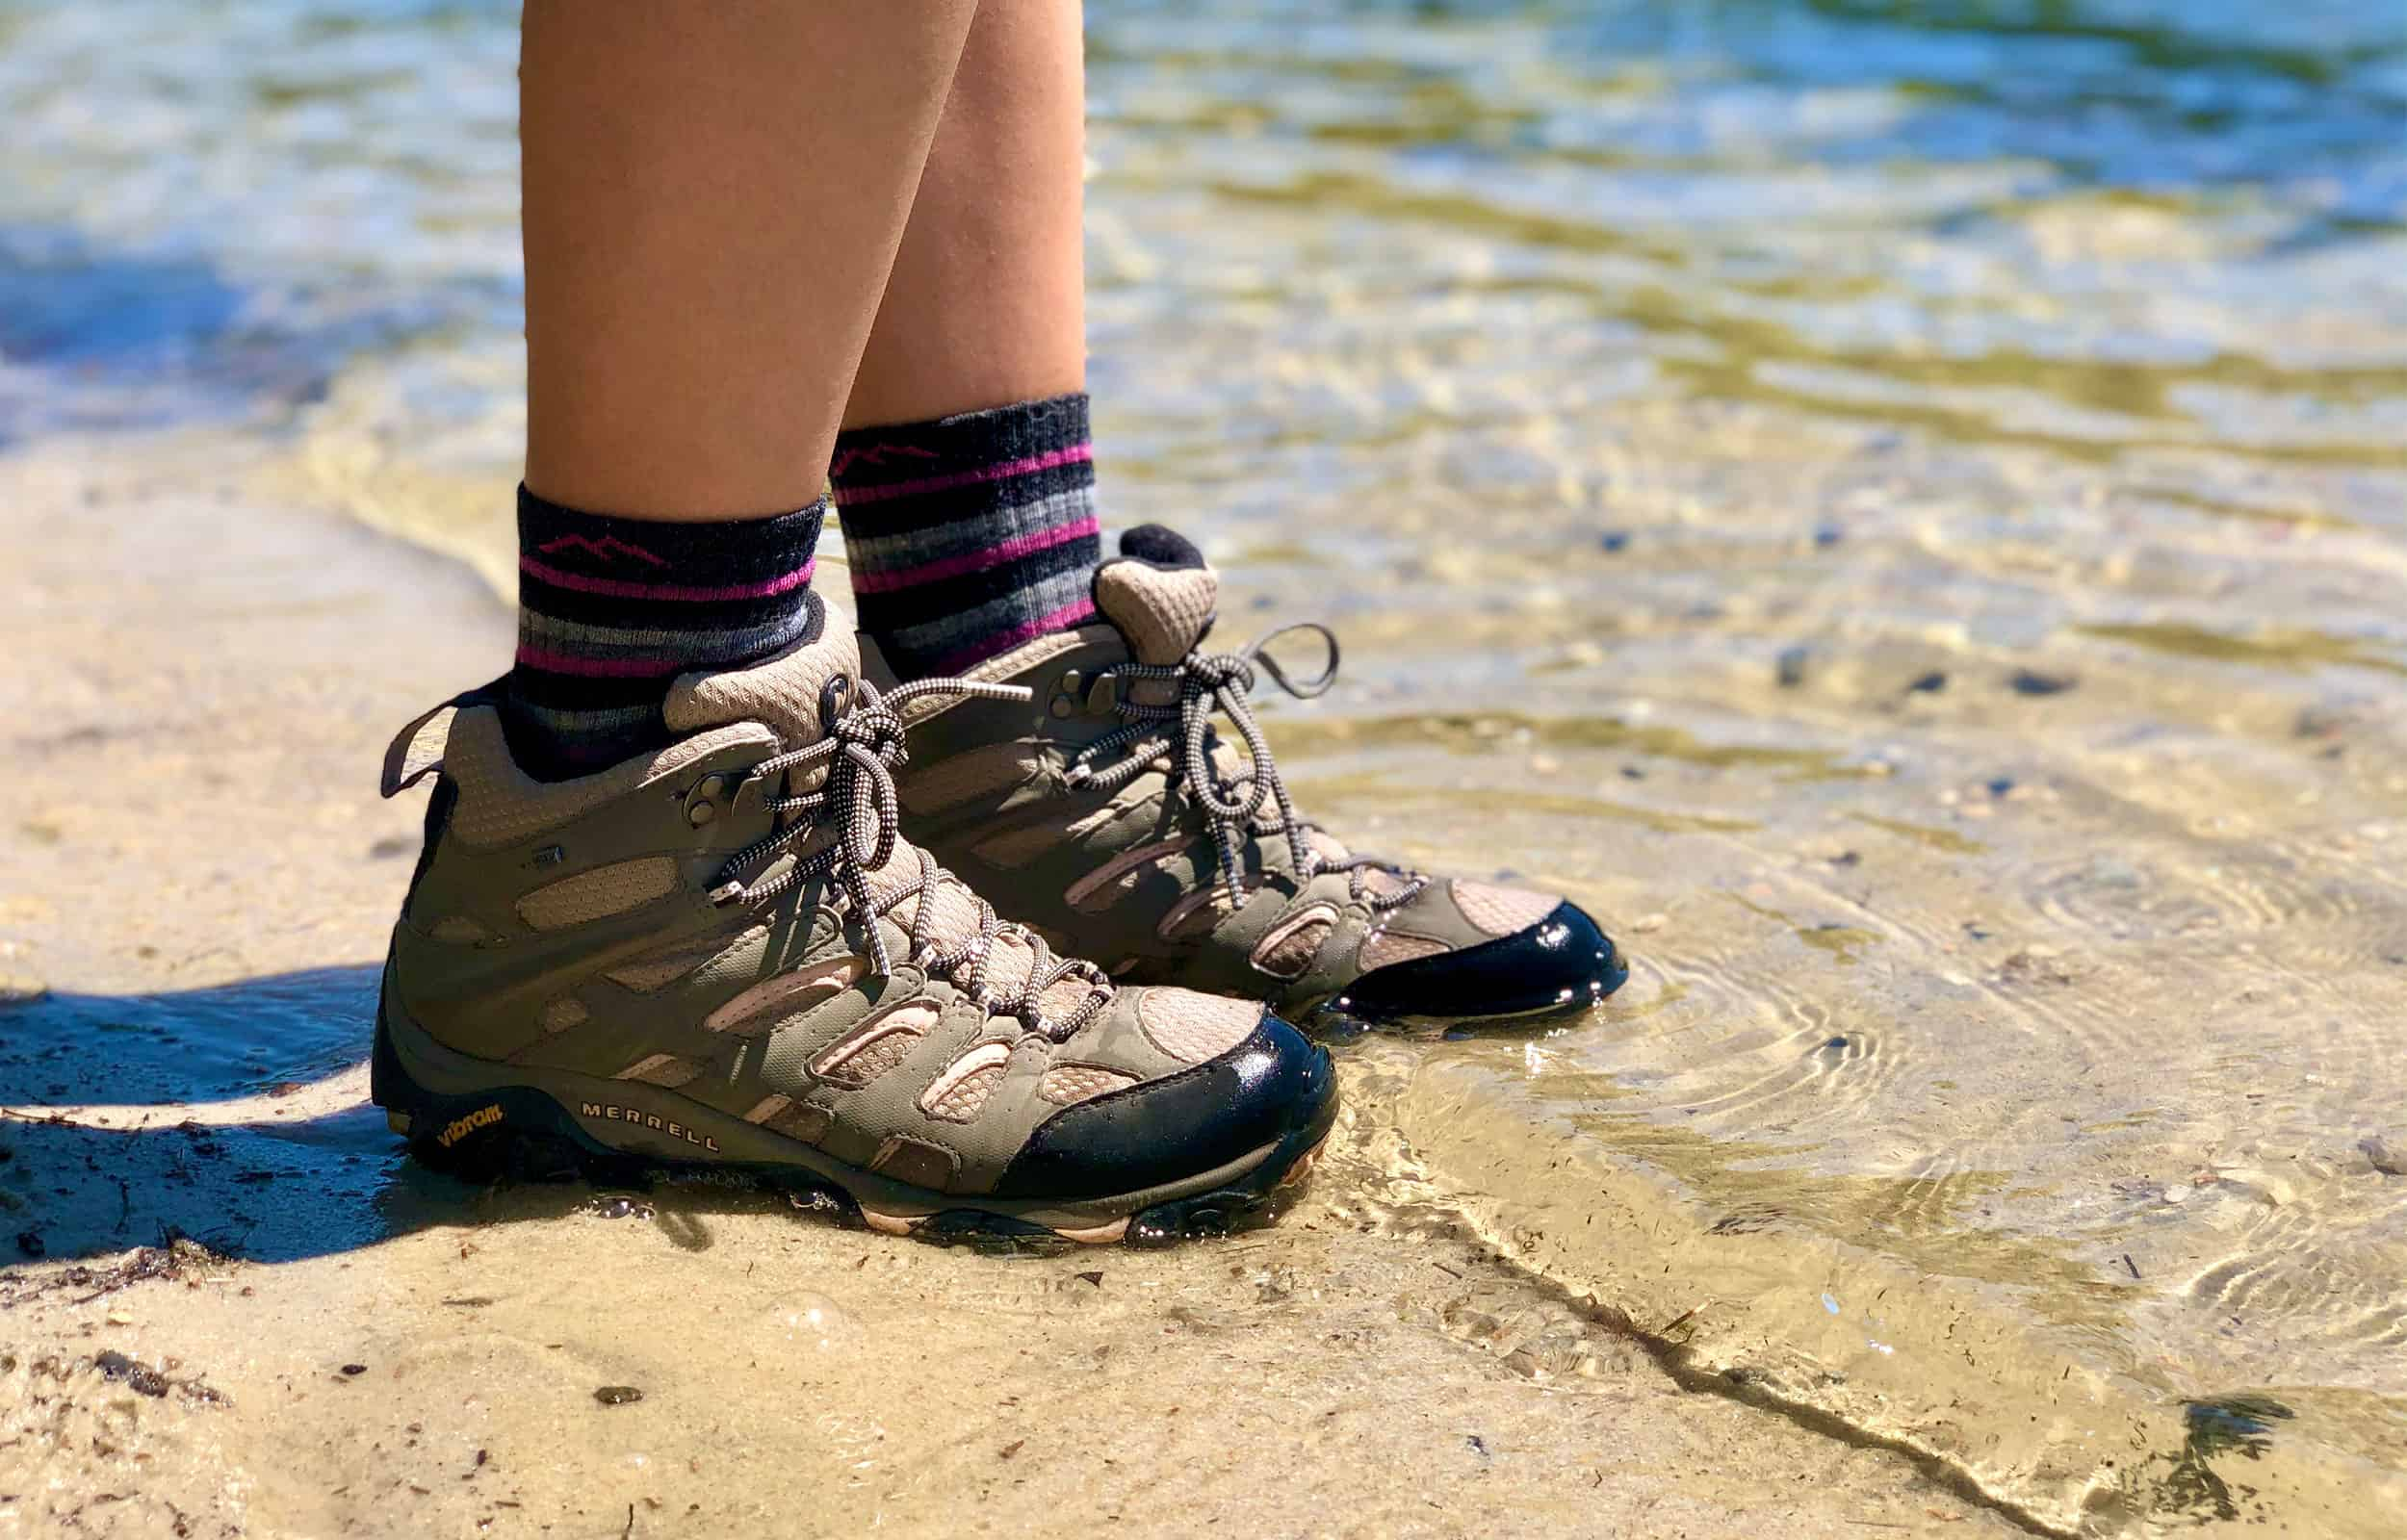 merrell moab 2 hiking boots in water